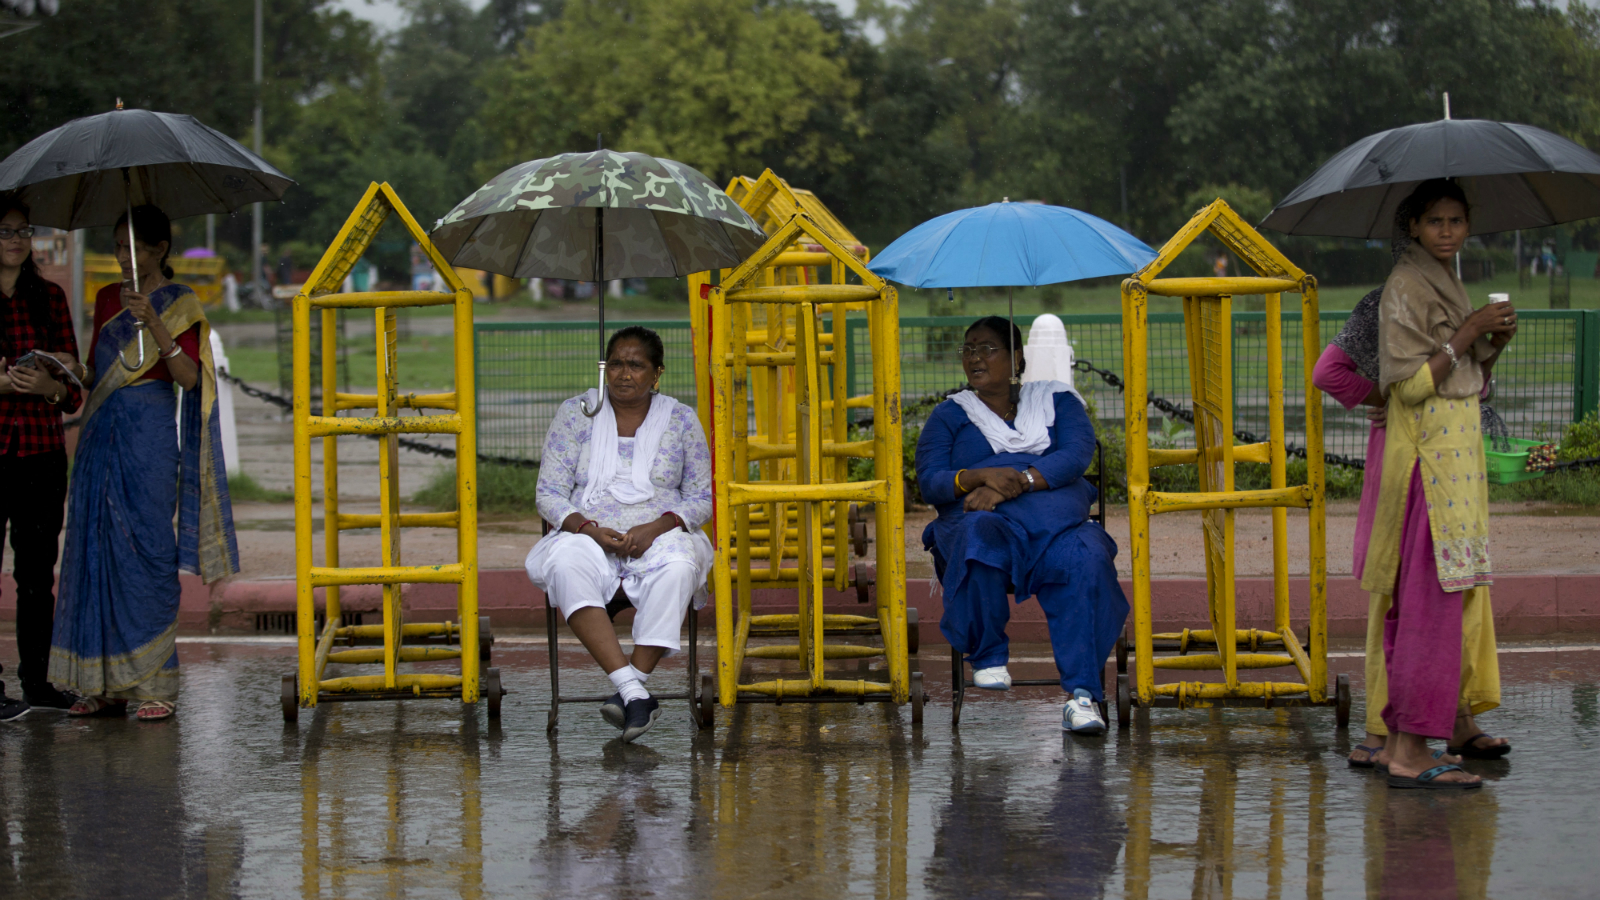 Indian women take shelter from the rain under umbrellas, placed on police barricades, in New Delhi, India, Thursday, Sept. 1, 2016. Monsoon season in India begins in June and ends in October.